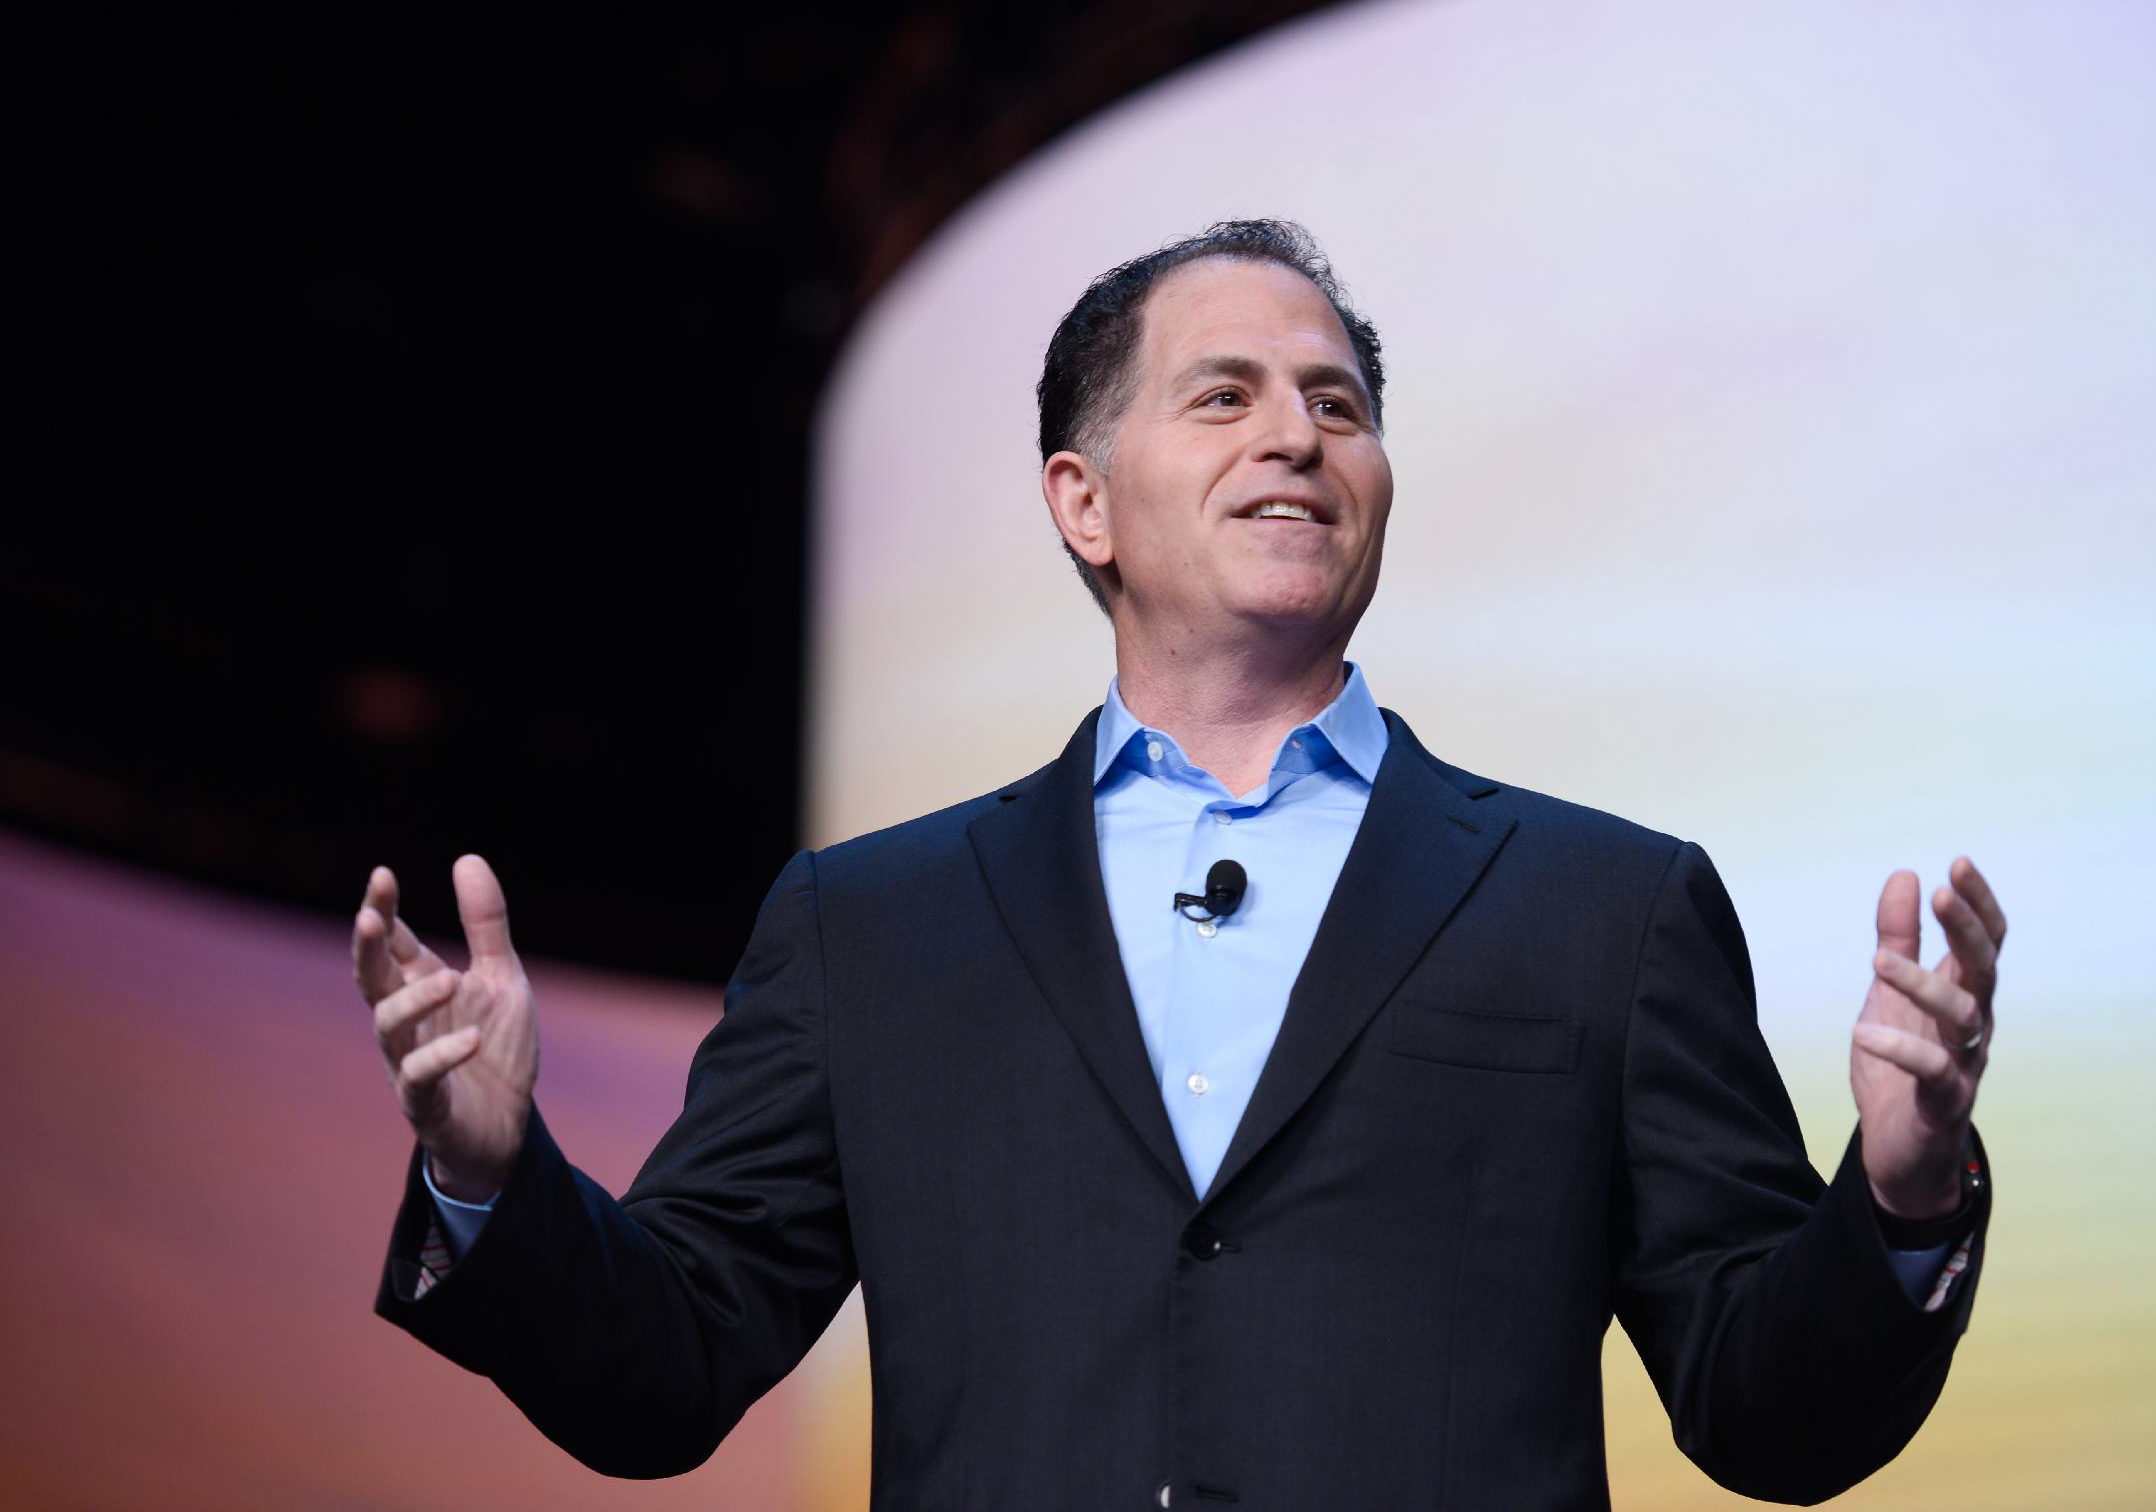 Michael Dell on digital transformation: 'Black Mirror tells us what not to do'